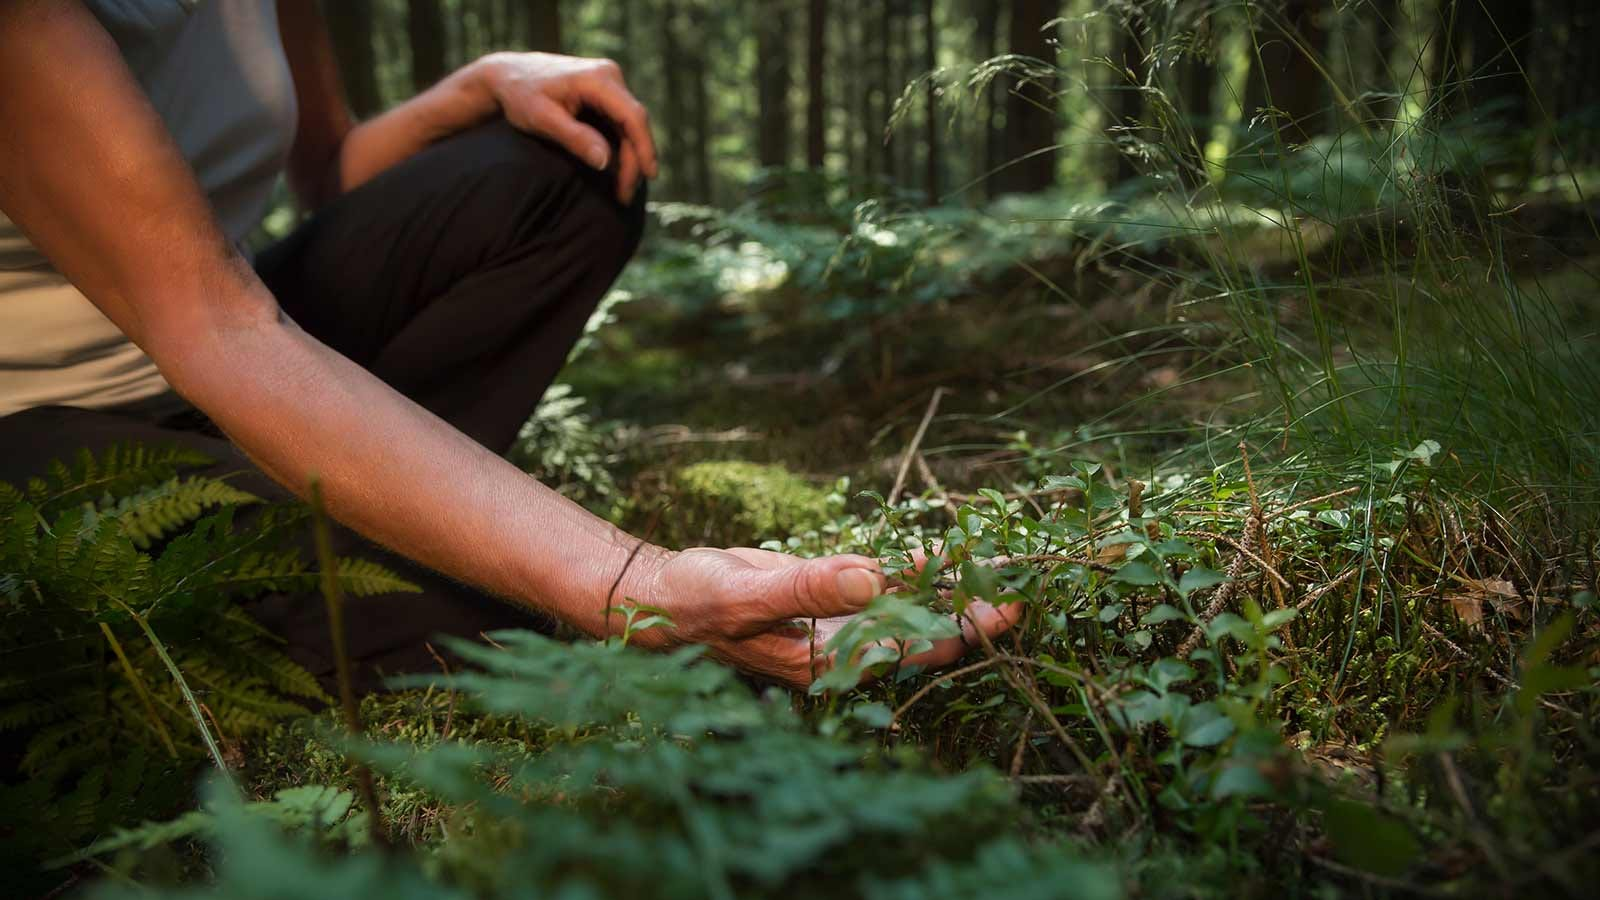 Woman looking at plants growing in the forest, relaxing with nature.